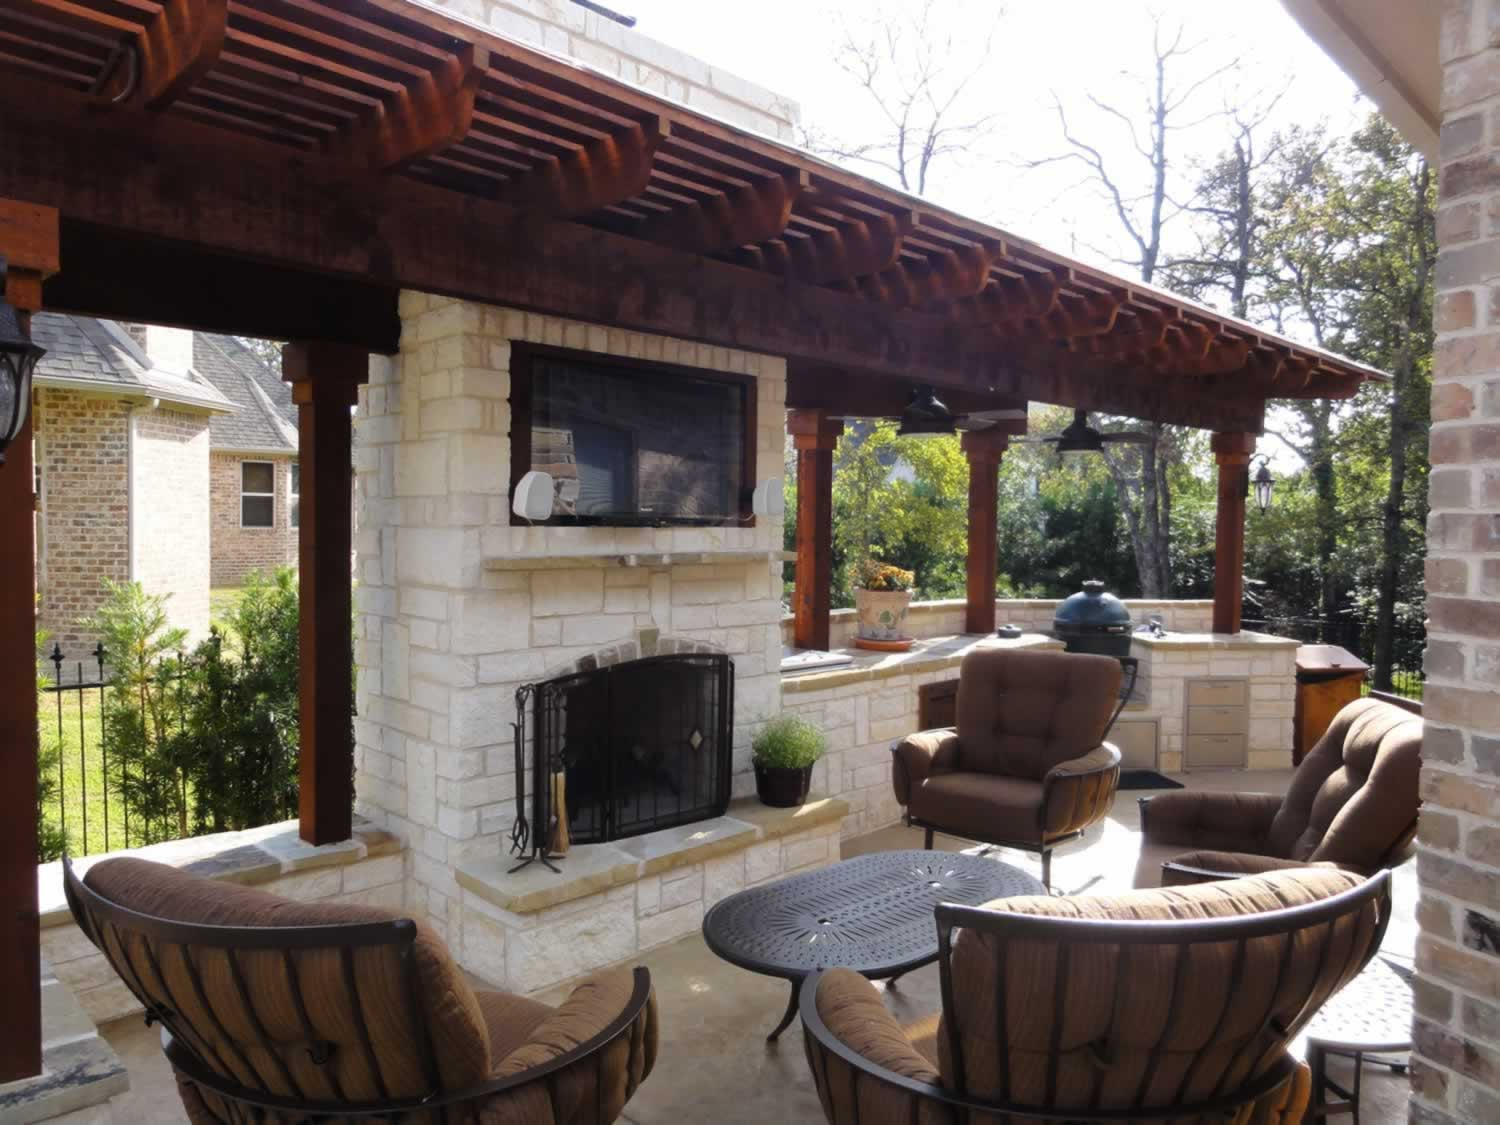 Landscape by Design | Landscape Contractor in North Texas on Outdoor Kitchen And Fireplace Ideas id=21031